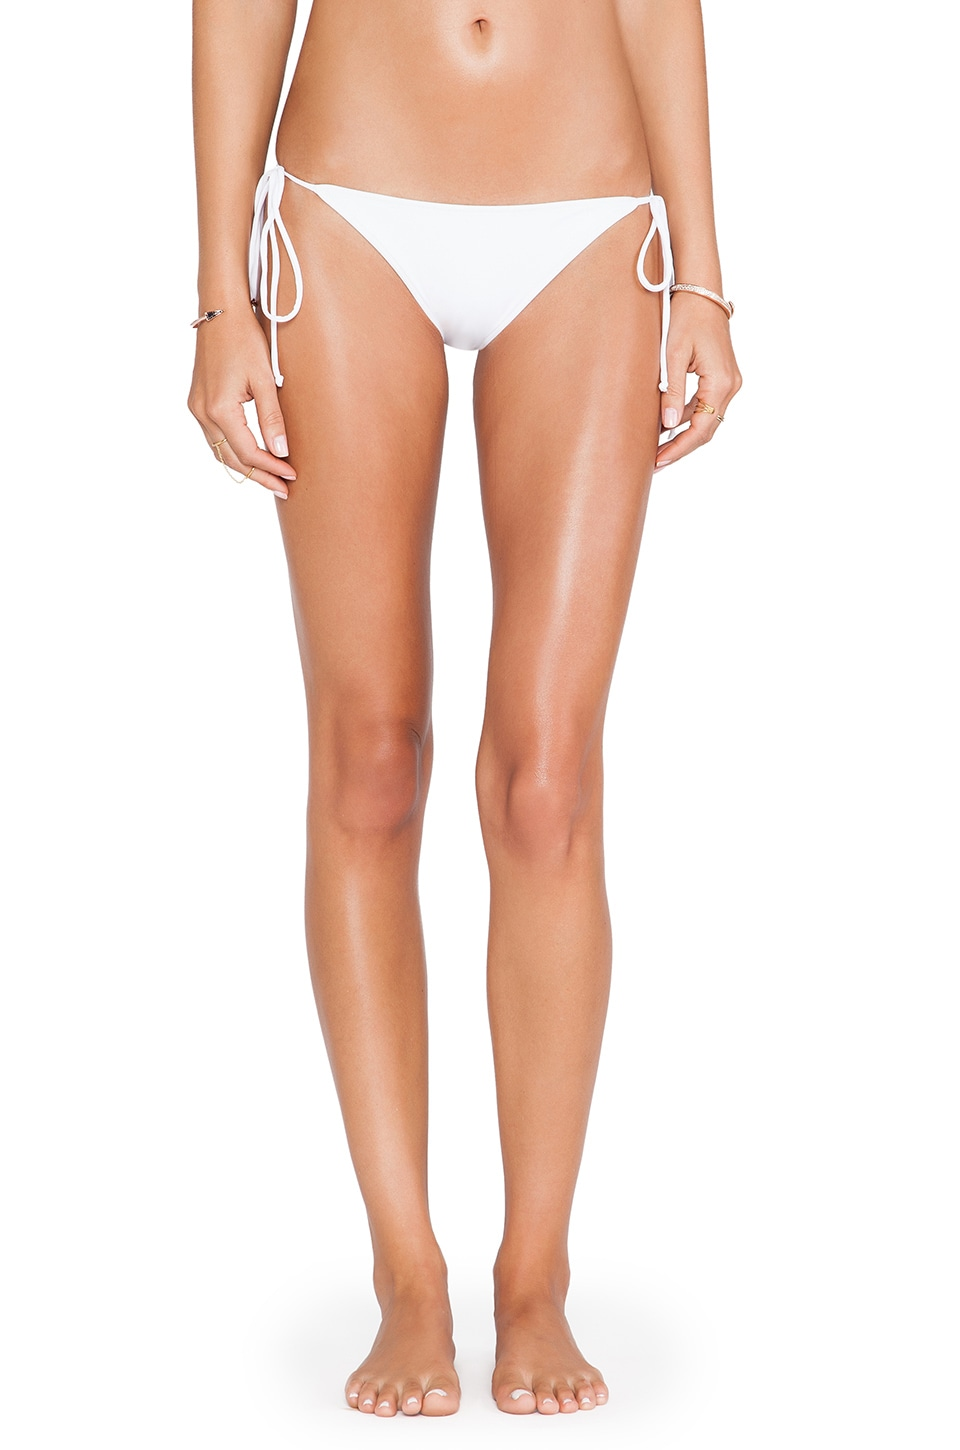 Rachel Pally Ibiza Bikini Bottom in White